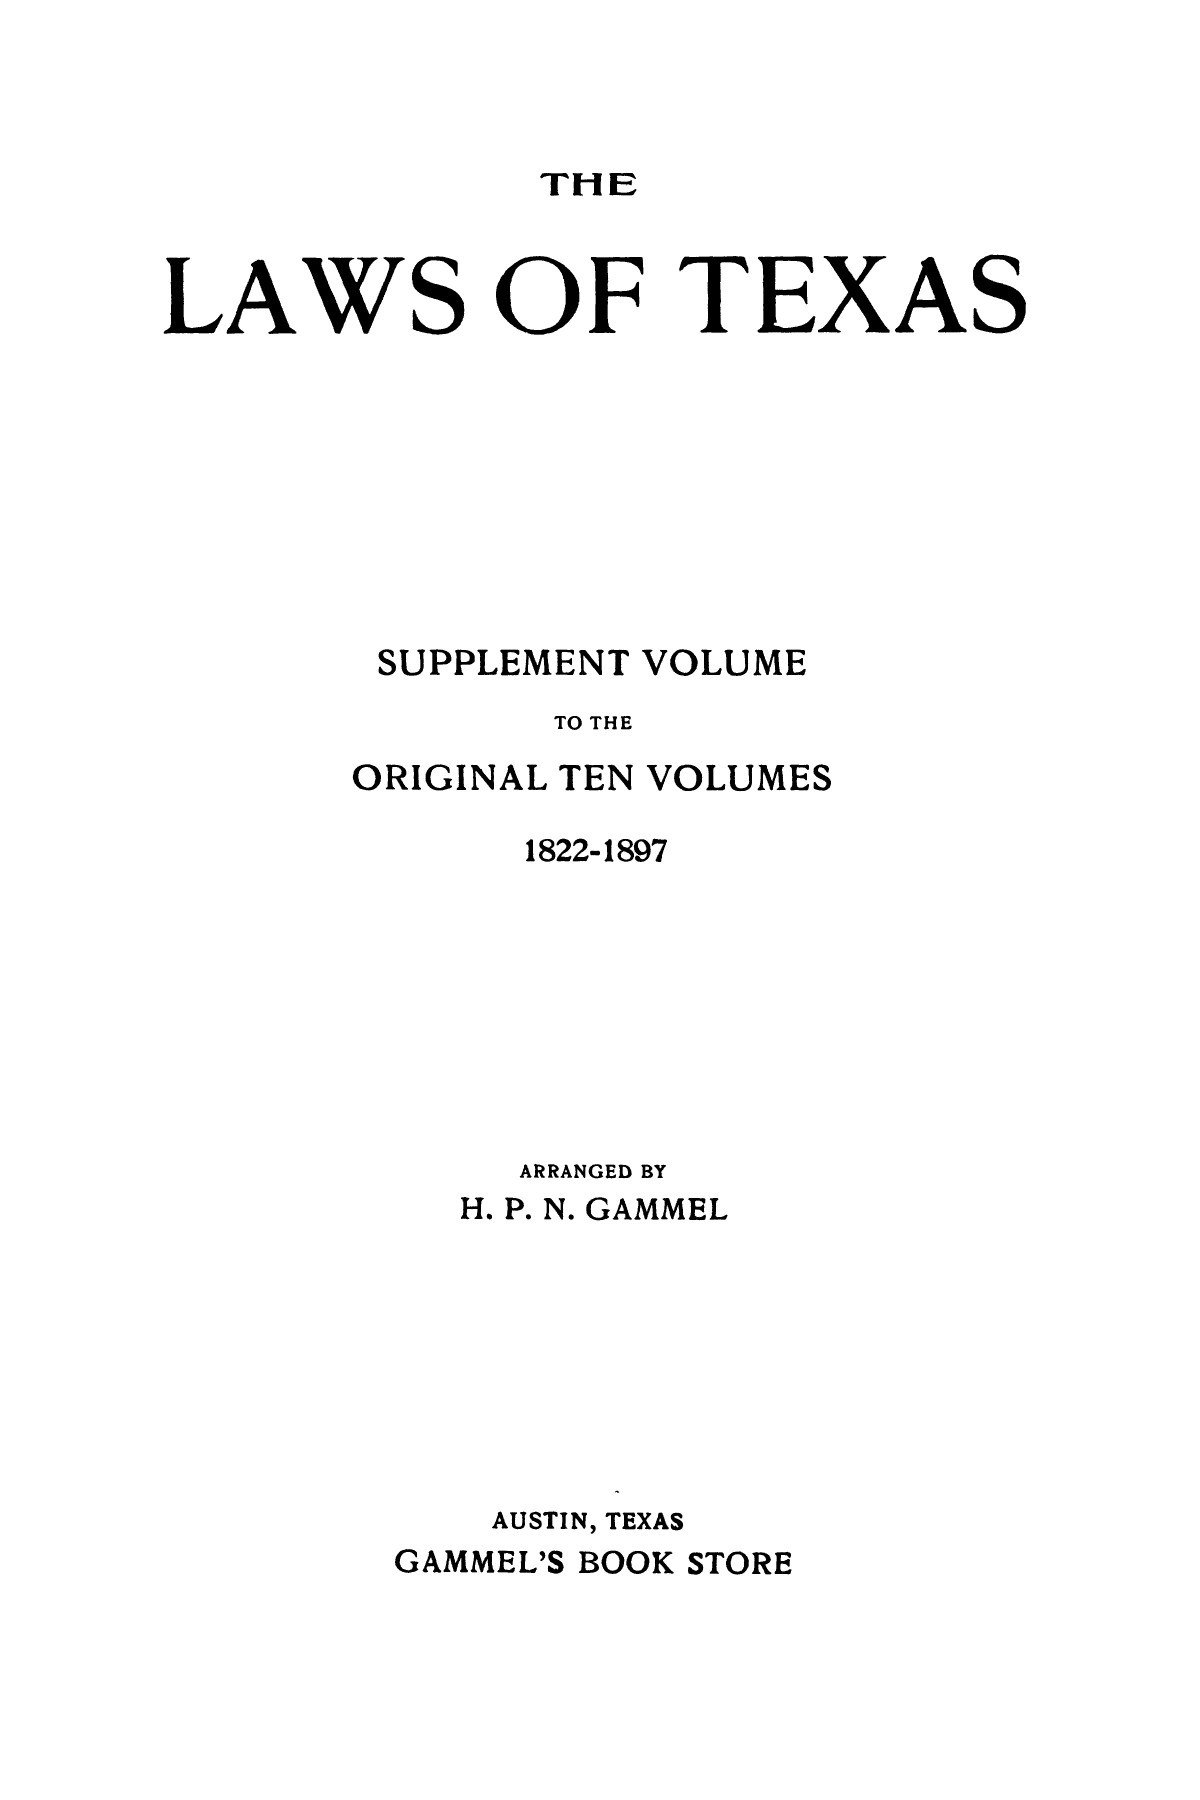 The Laws of Texas, 1919 [Volume 19]                                                                                                      [Sequence #]: 1 of 1570